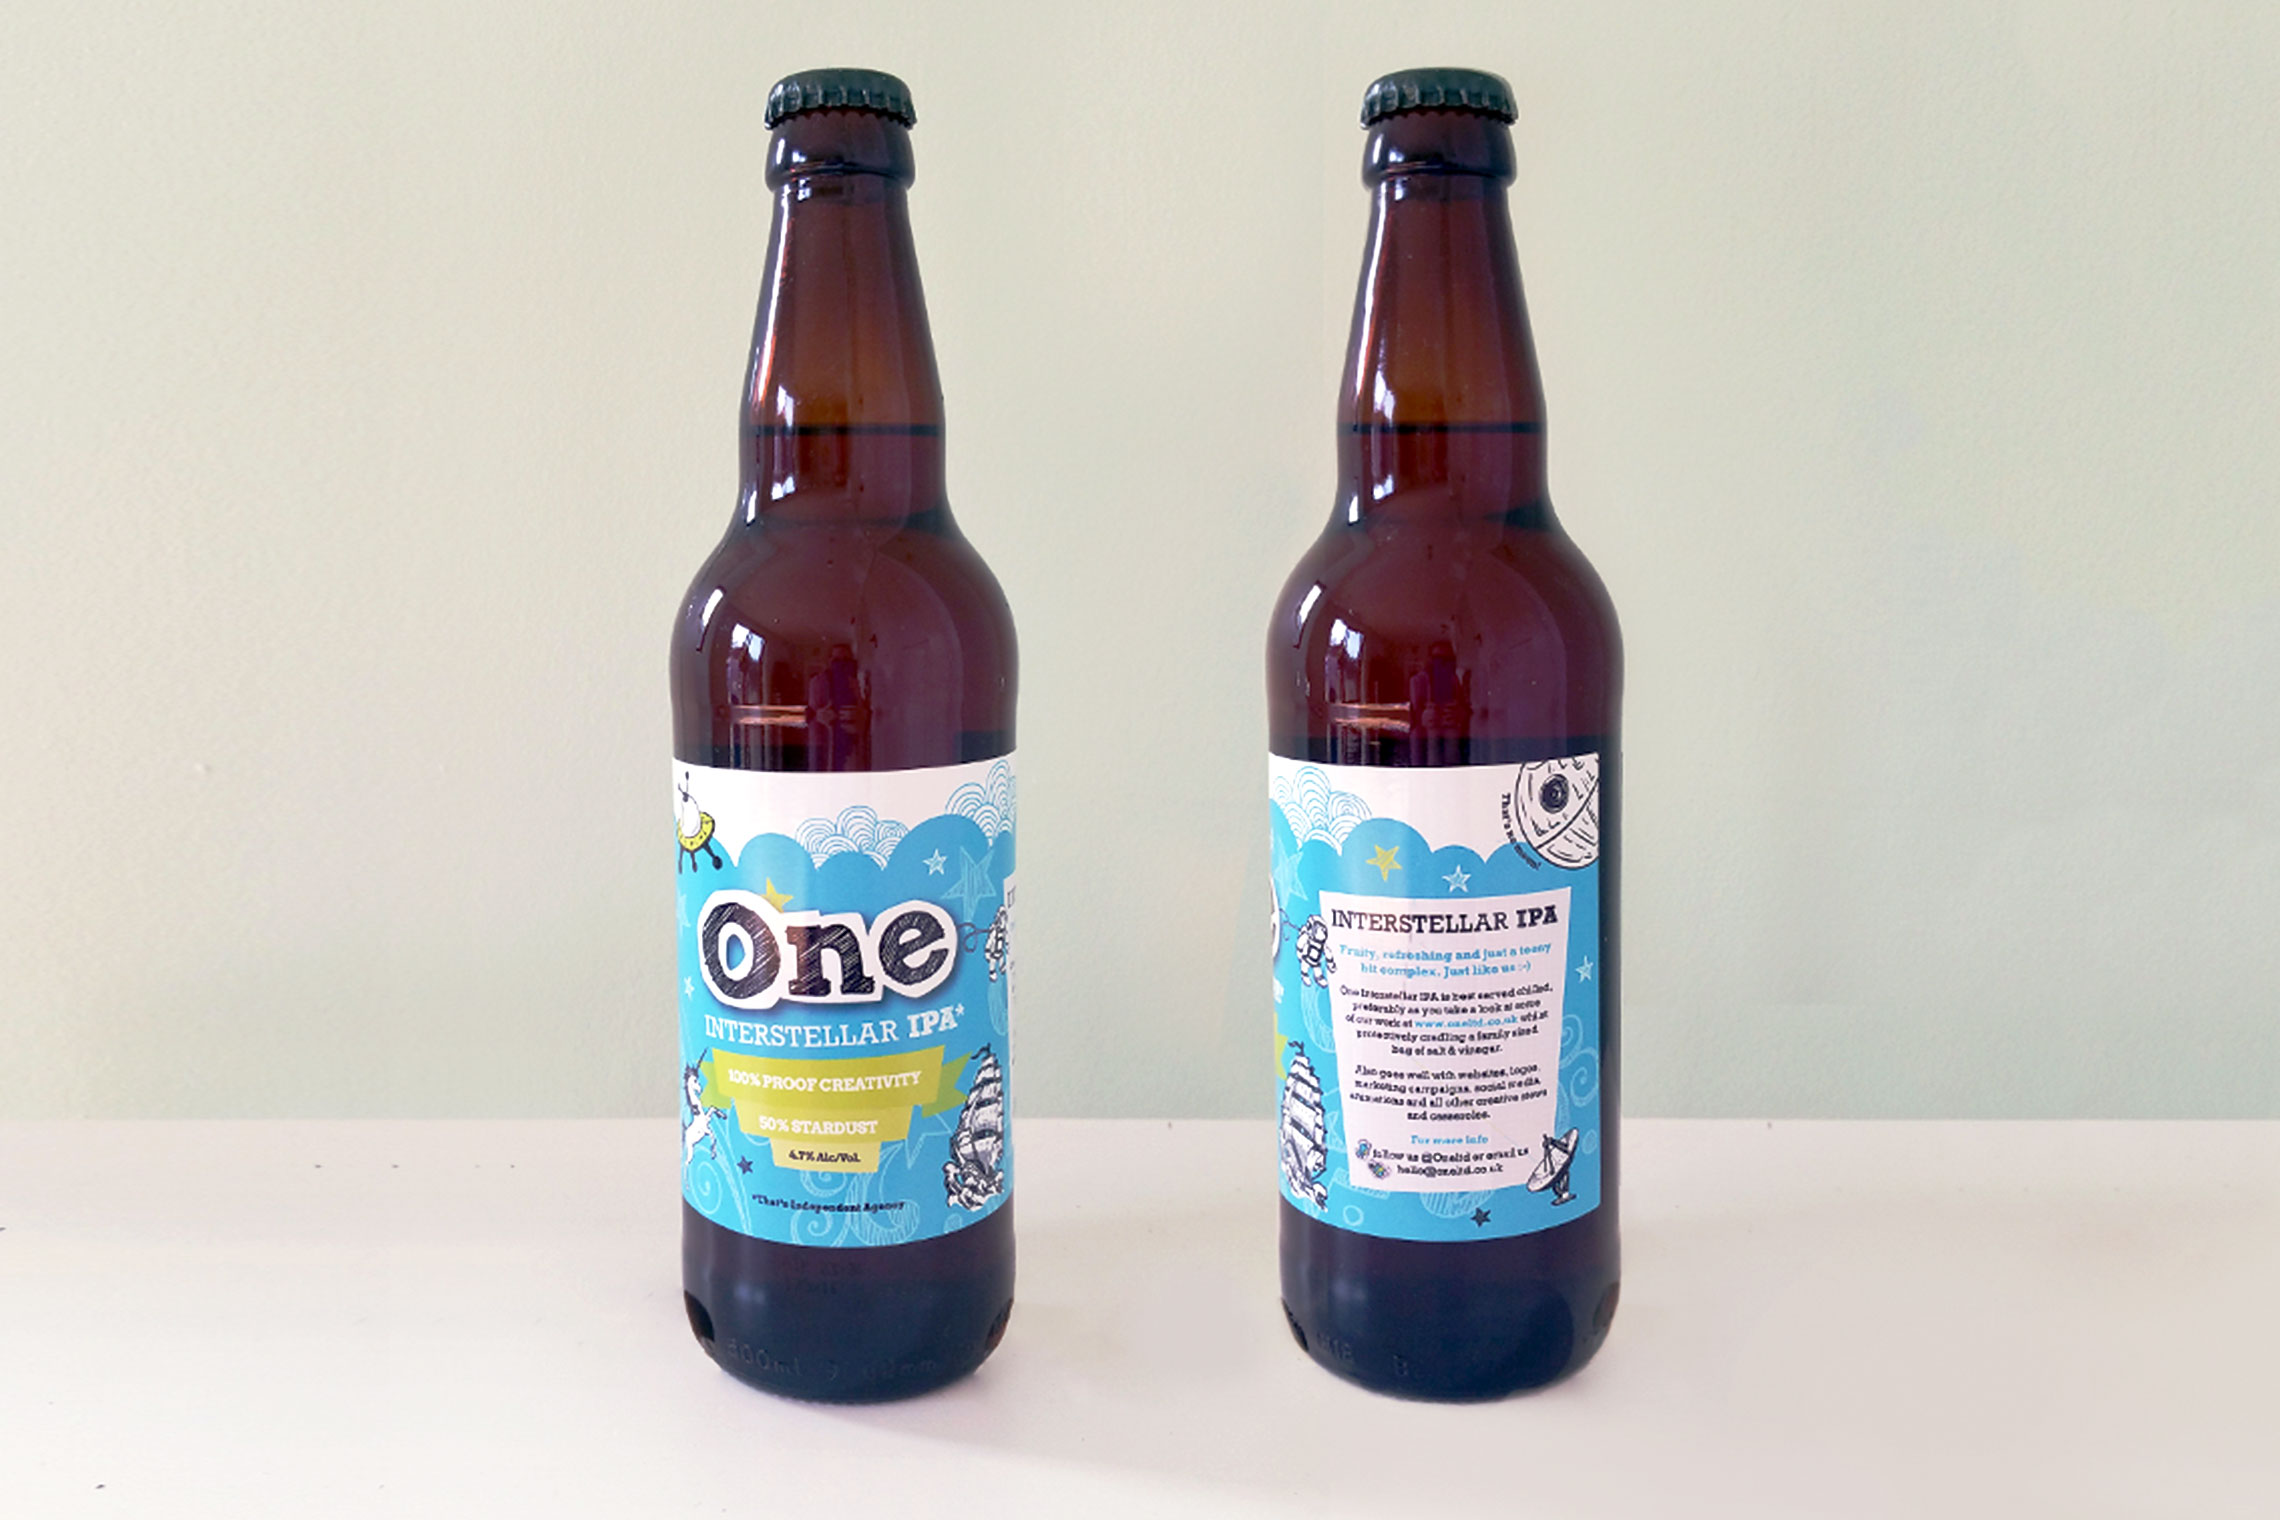 Beer bottles with One Ltd beer label - front and back view | Made by Miranda | © Miranda Dawson | madebymiranda.co.uk